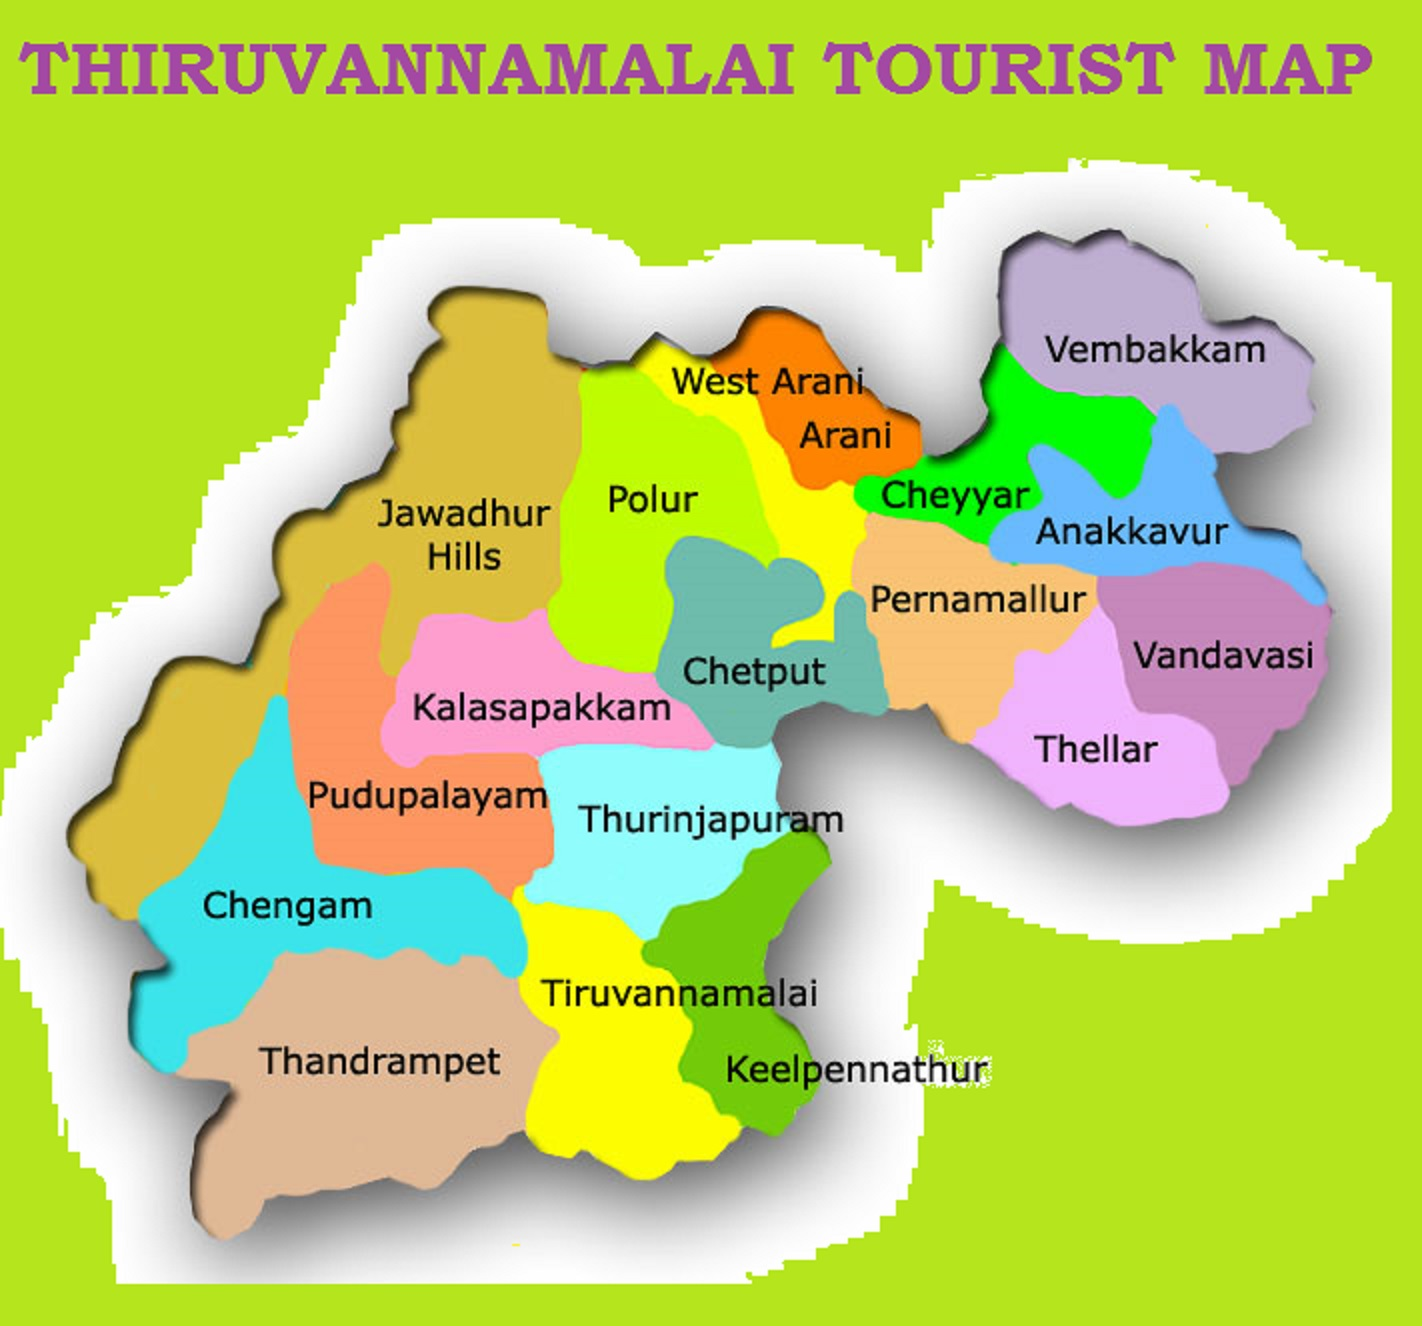 THIRUVANNAMALAI TOURIST MAP – South India Map With Tourist Places